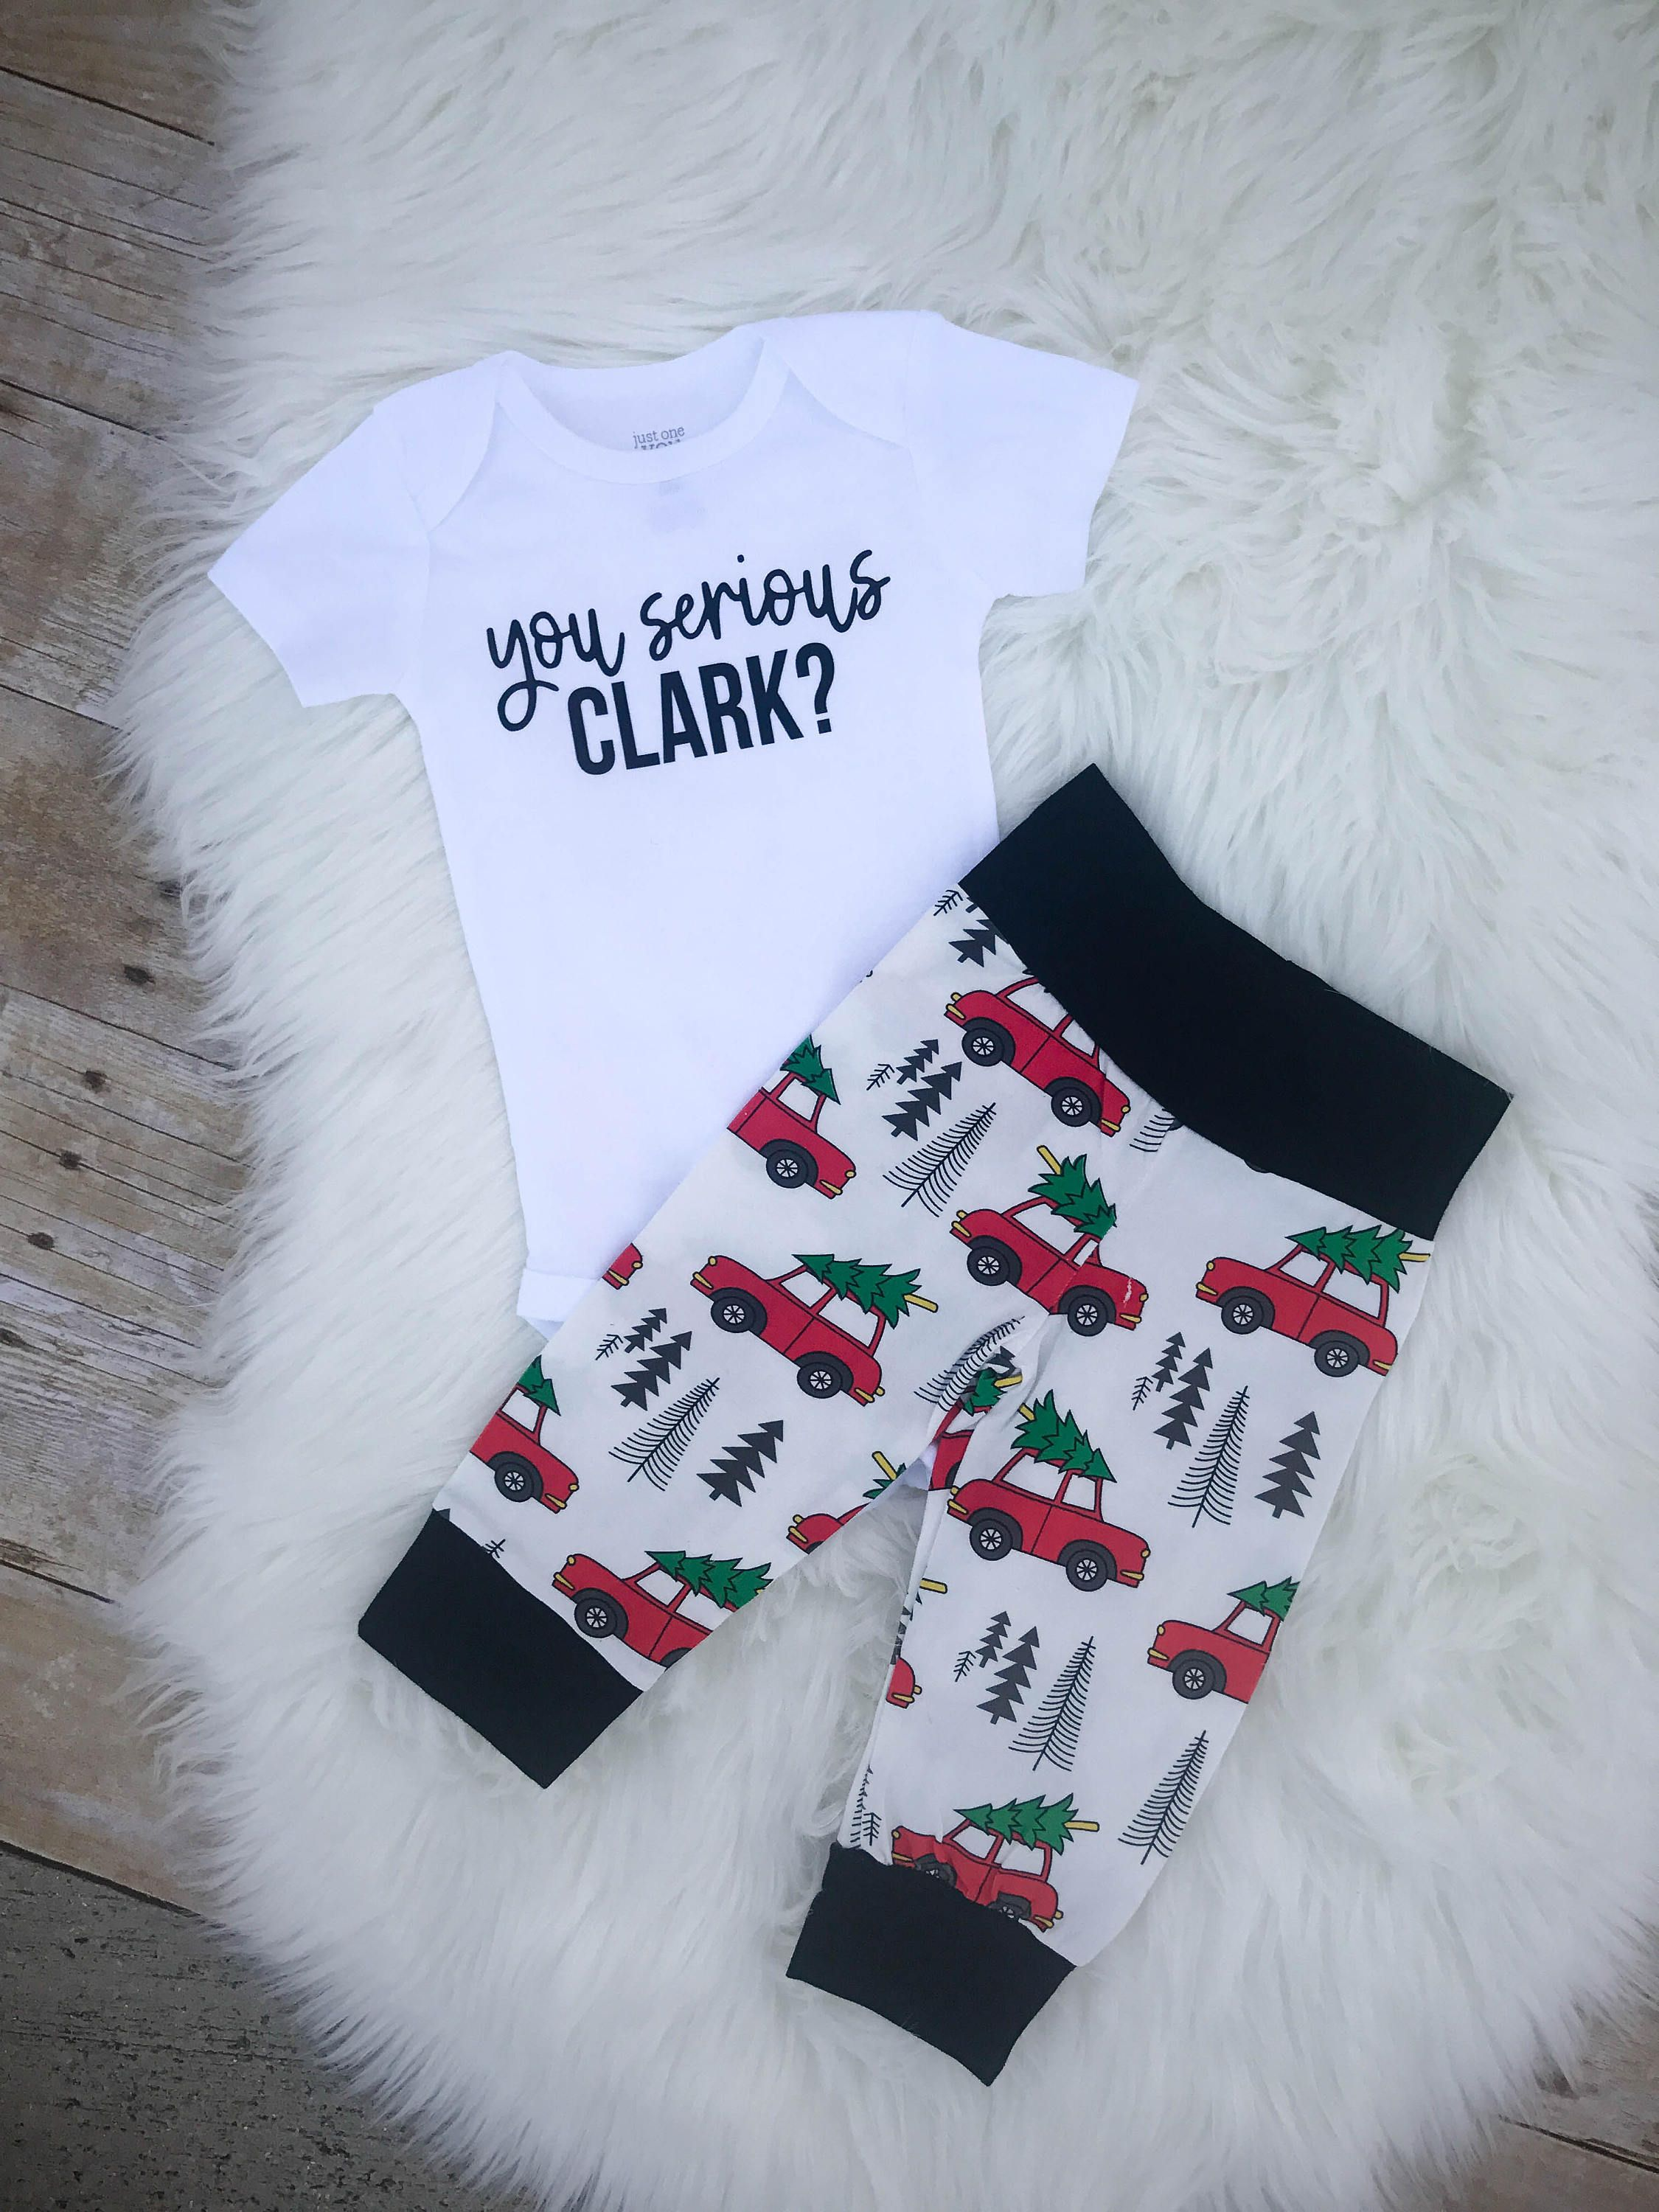 594adf699 Christmas vacation baby outfit, you serious clark, Griswold baby set, Christmas  vacation baby, hipster christmas, christmas outfit by CoastalPeaches on Etsy